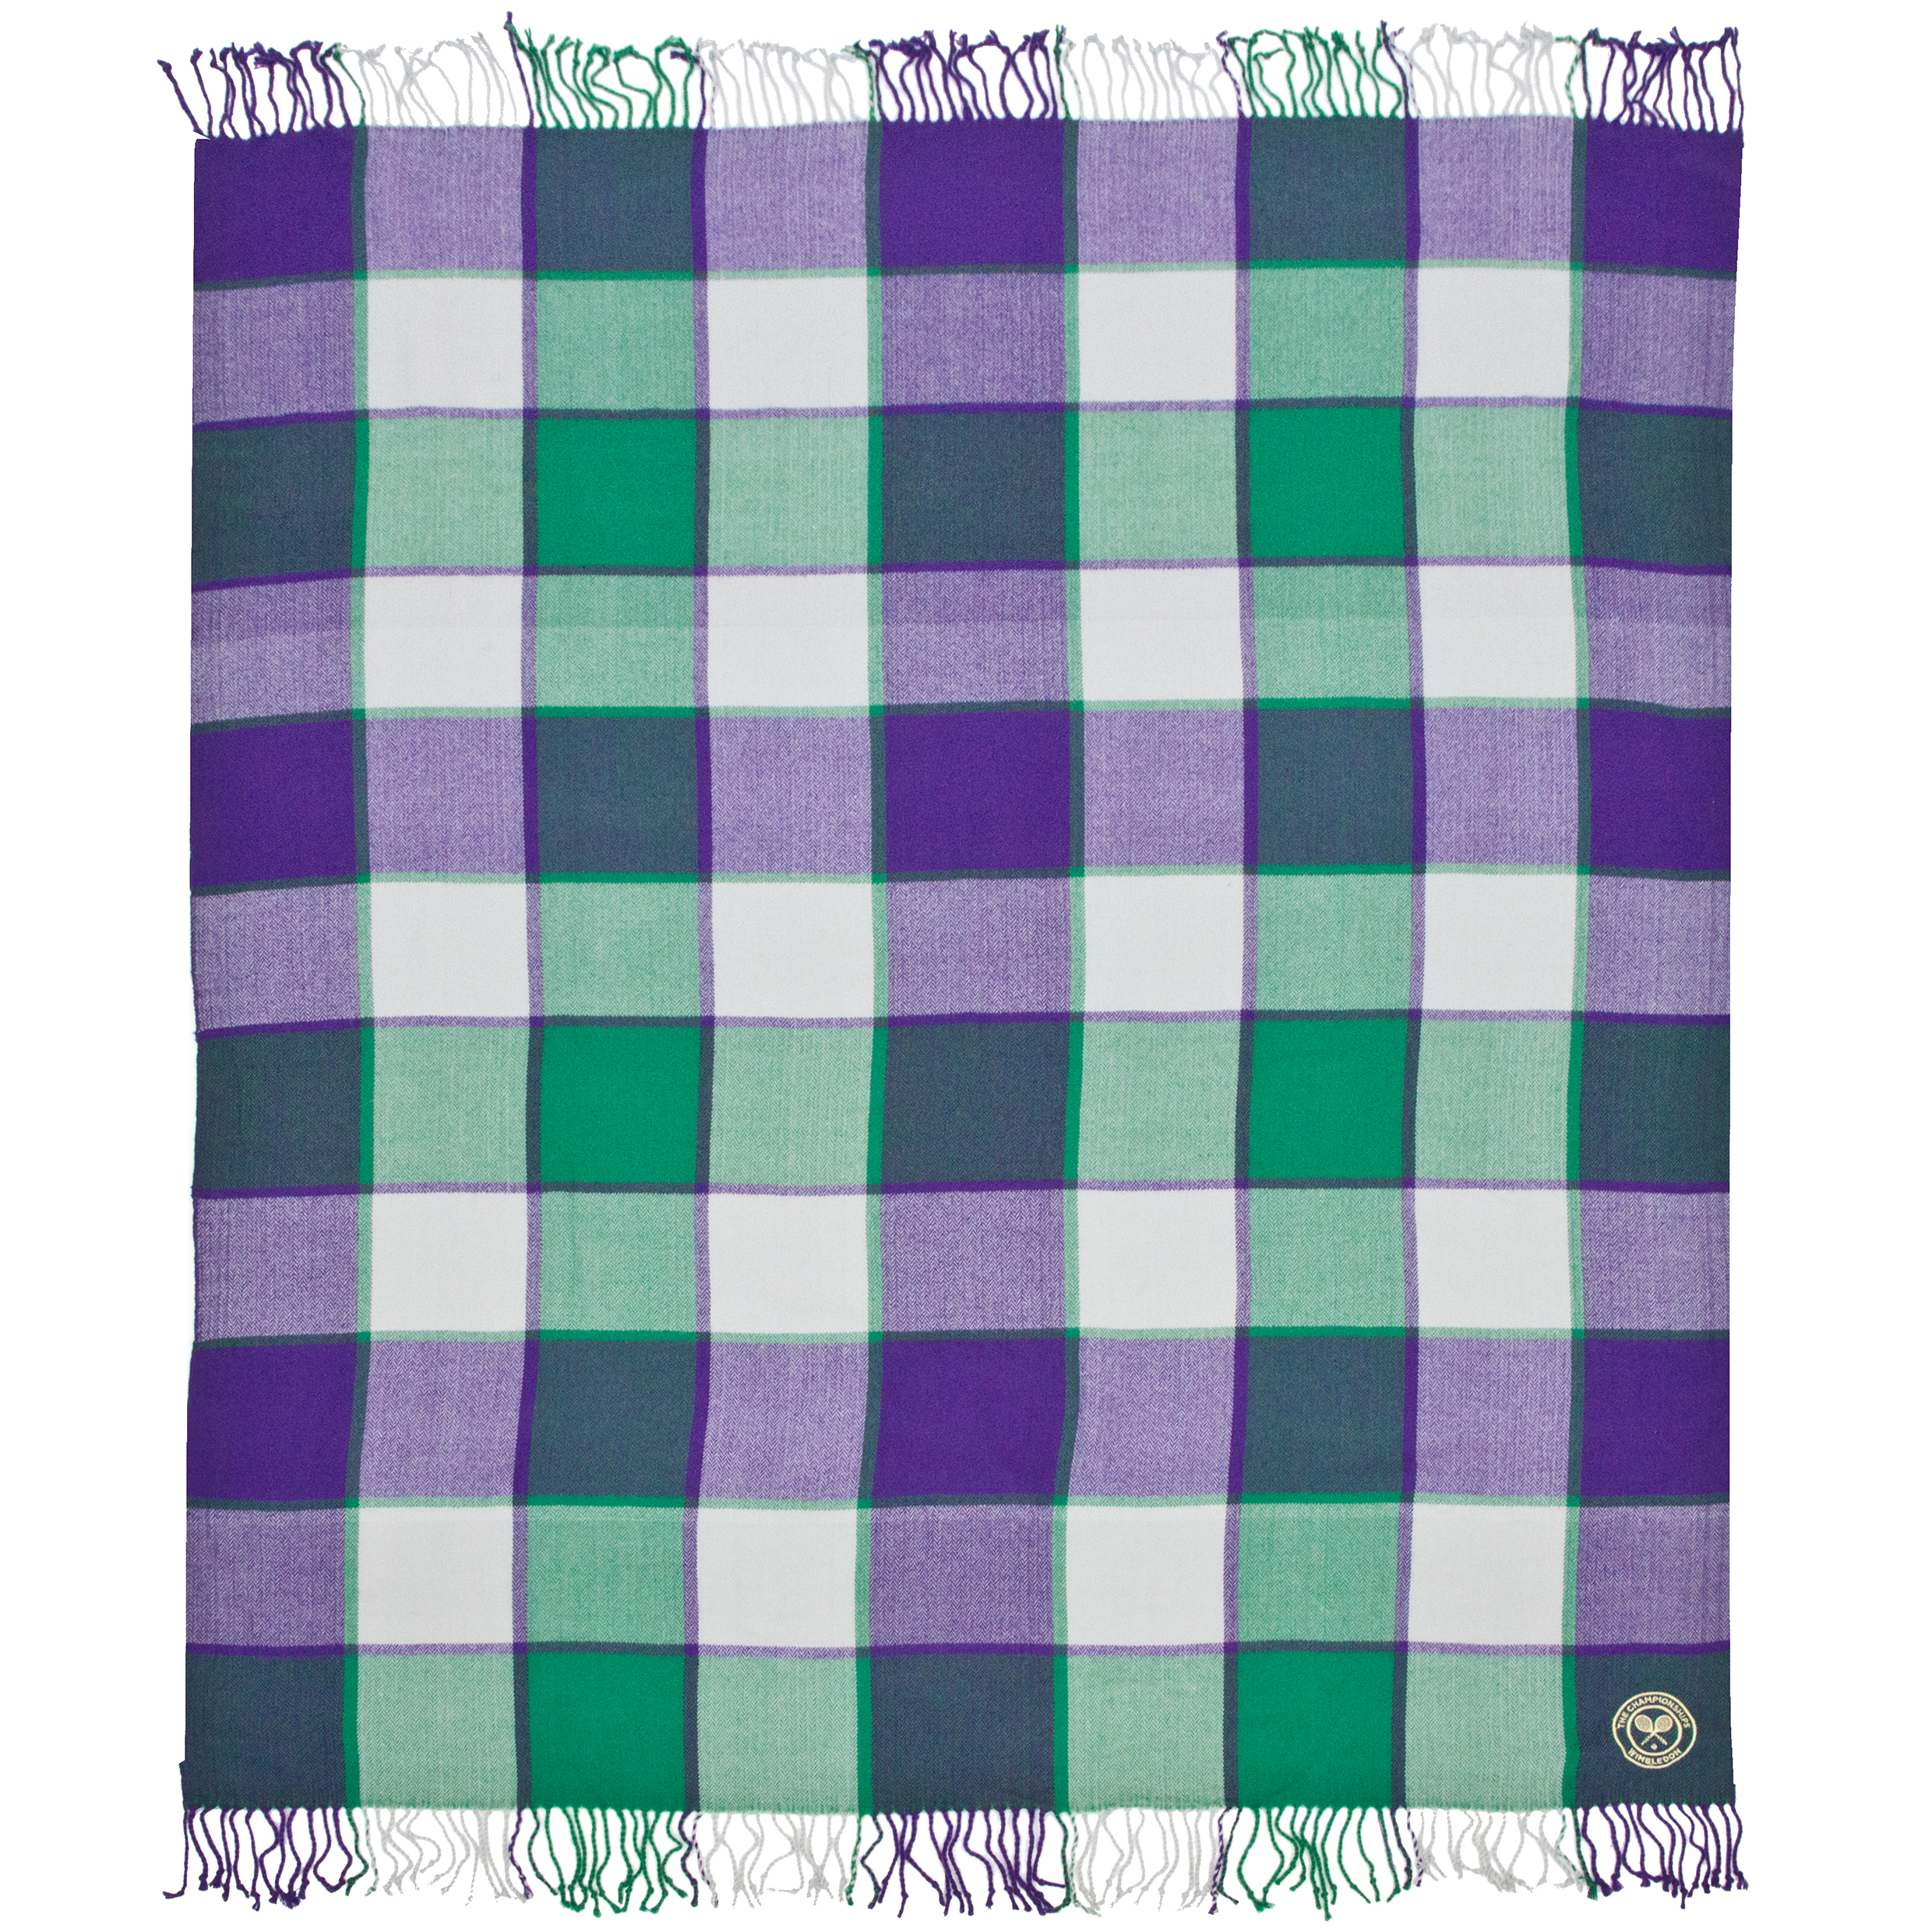 Wimbledon Picnic Throw - Purple/Green